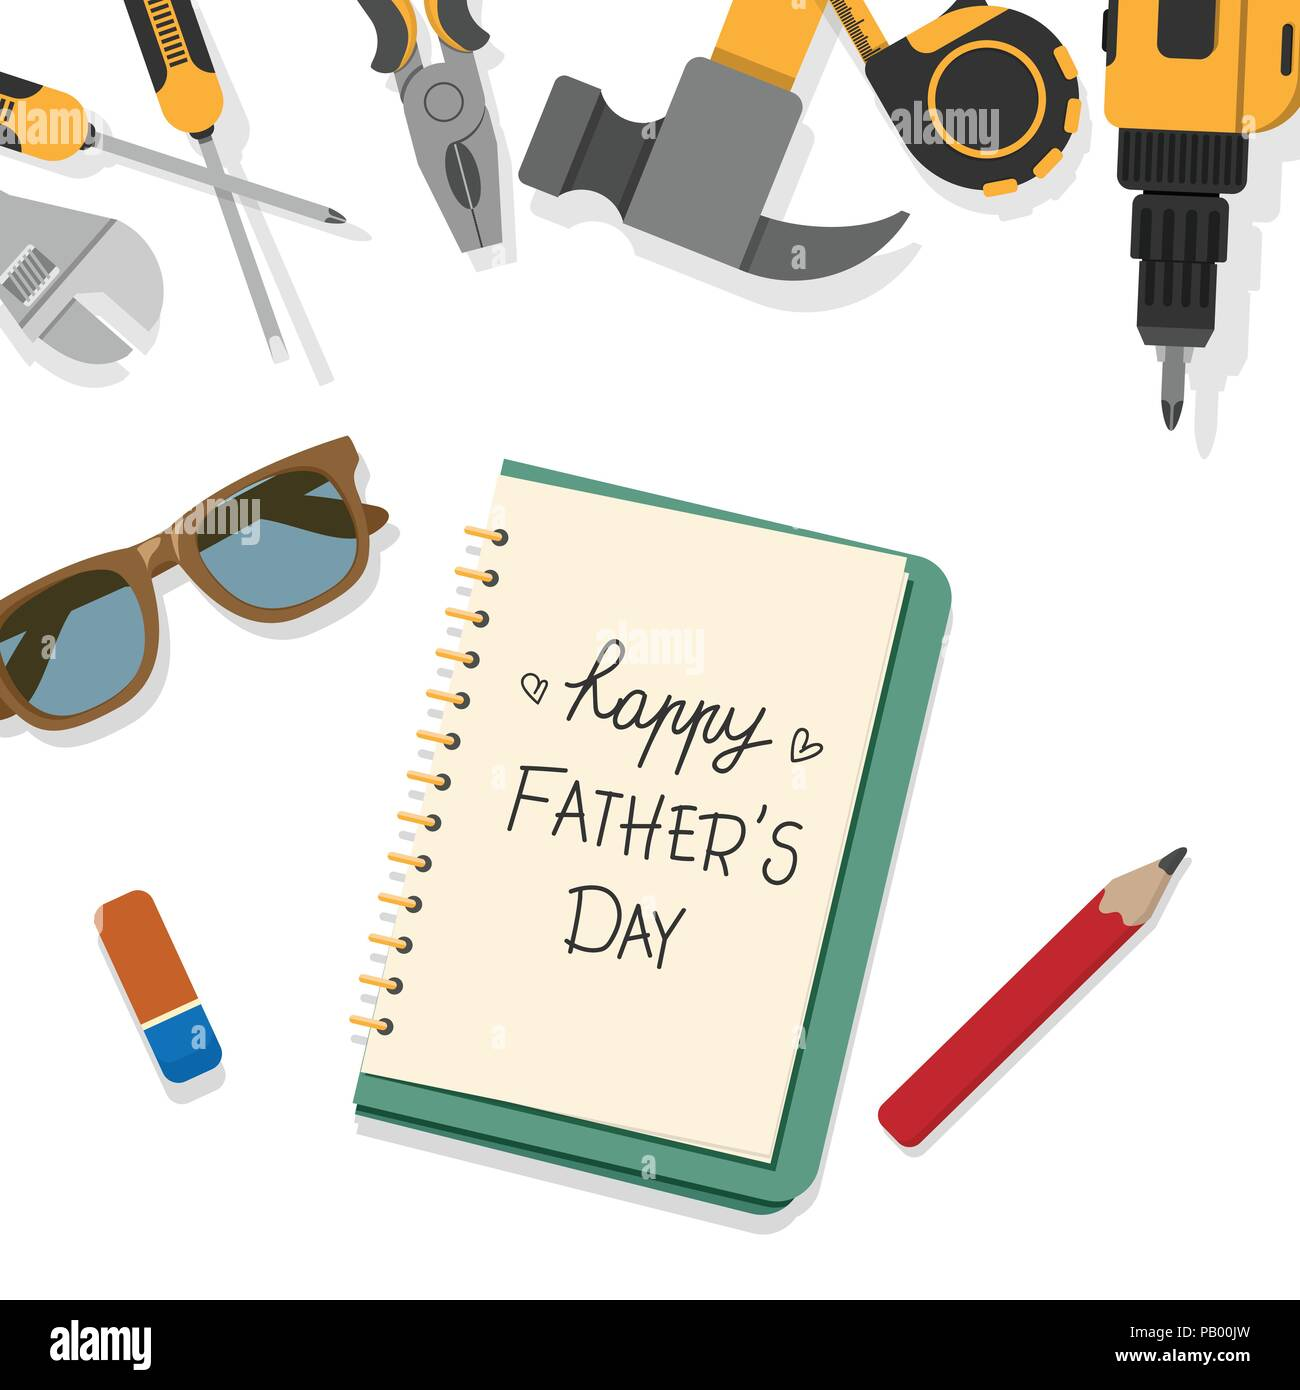 Happy Fathers Day Word Write By Pencil On Book Page With Top Border Of Home Tools Isolated White Background